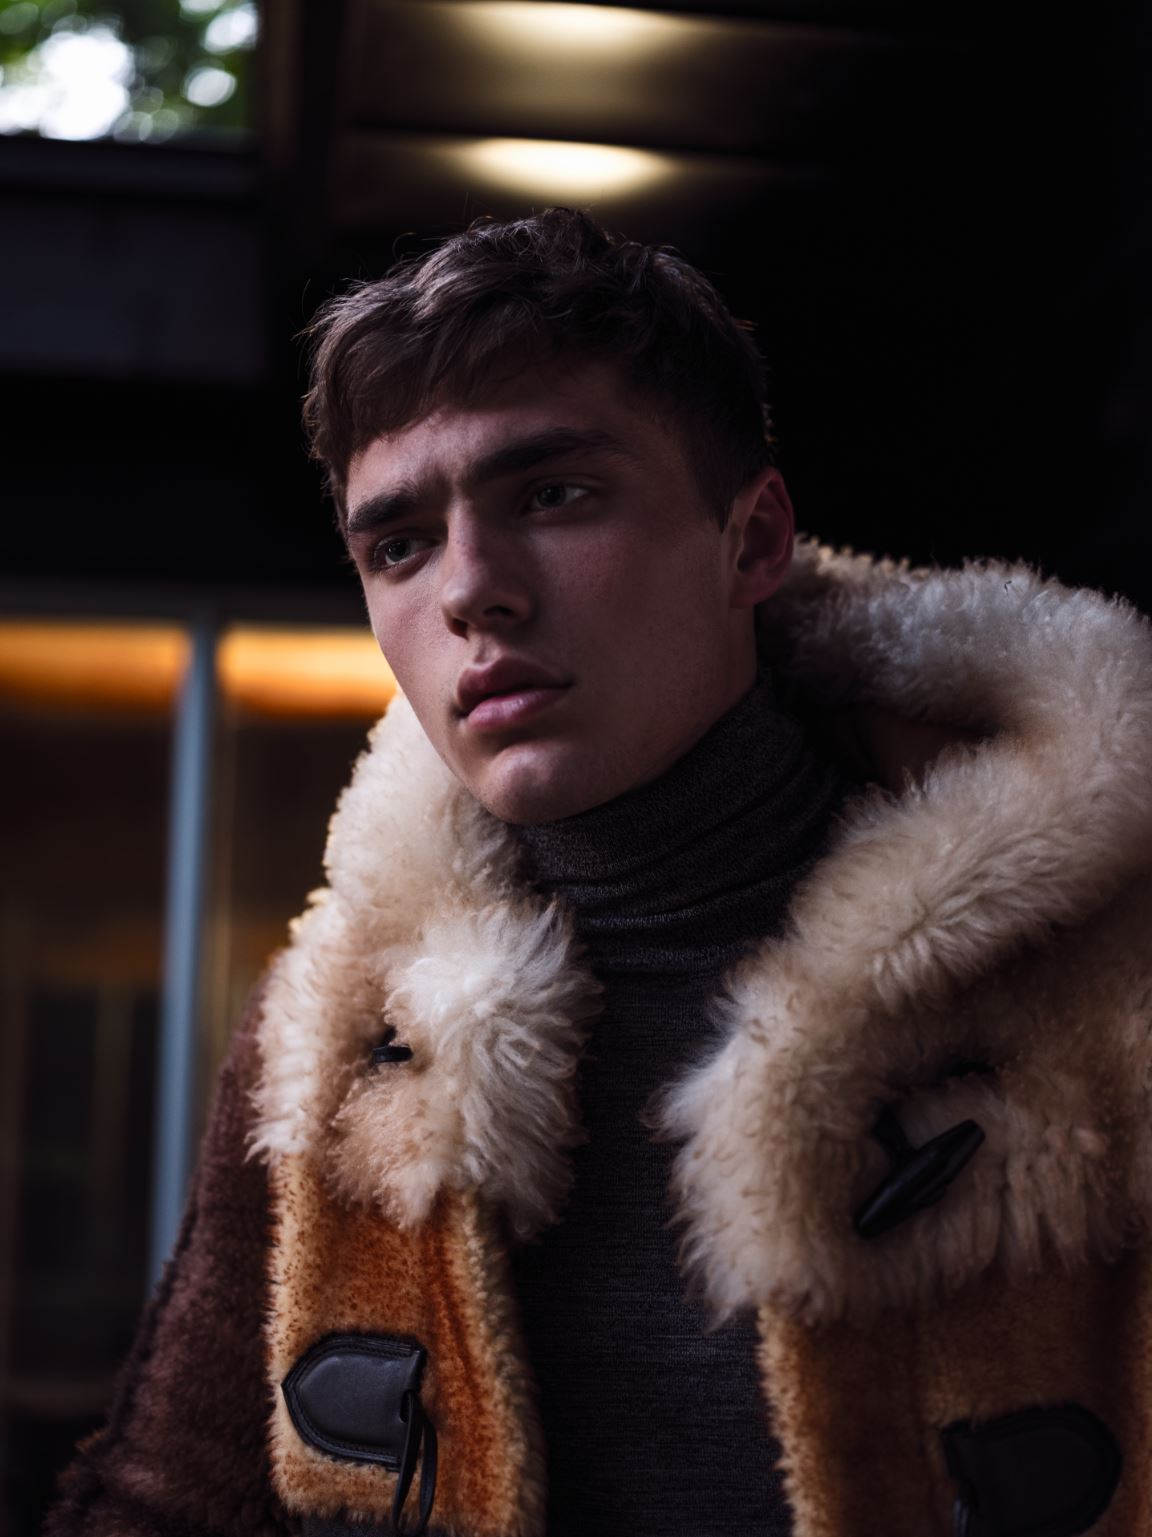 Coat COACH ($3,250). Turtleneck BOSS ($205). Photographer Andrew Soule. Stylist Mark John Tripp. Model Mitchell at Ciotti. Grooming: Richard J using MAC COSMETICS, DERMALOGICA SKIN CARE, and KEVIN MURPHY HAIR CARE. Assistant photographers Mori Arany and Chung Ling Lo. Location Franke House.